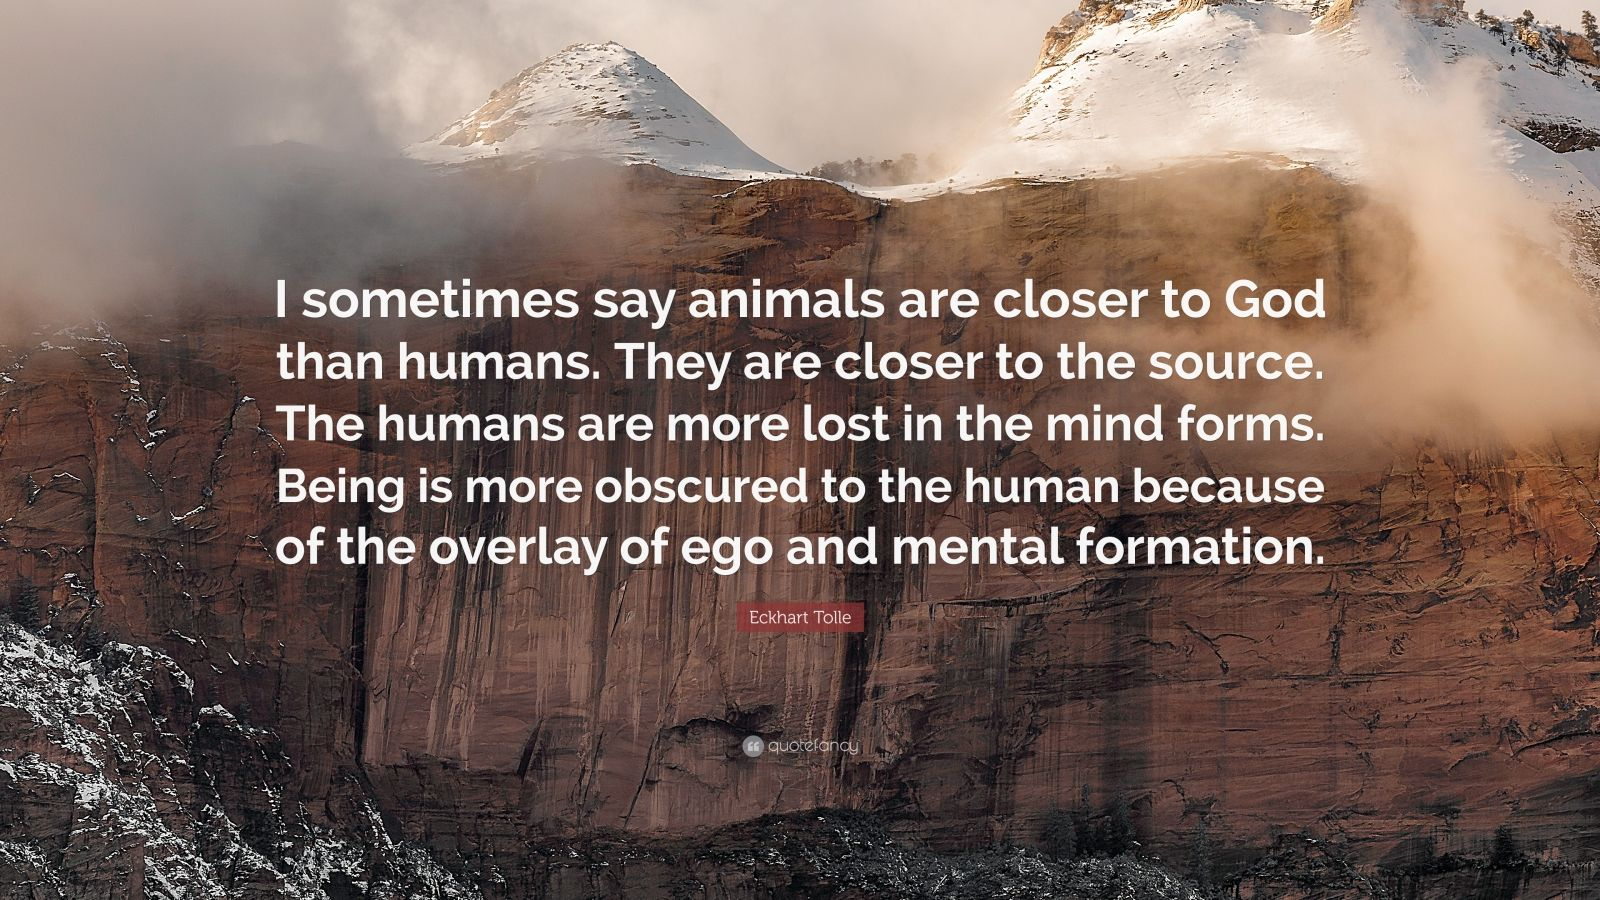 "Eckhart Tolle Quote: ""I sometimes say animals are closer to God than humans. They are closer to the source. The humans are more lost in the mind forms. Being is more obscured to the human because of the overlay of ego and mental formation."""